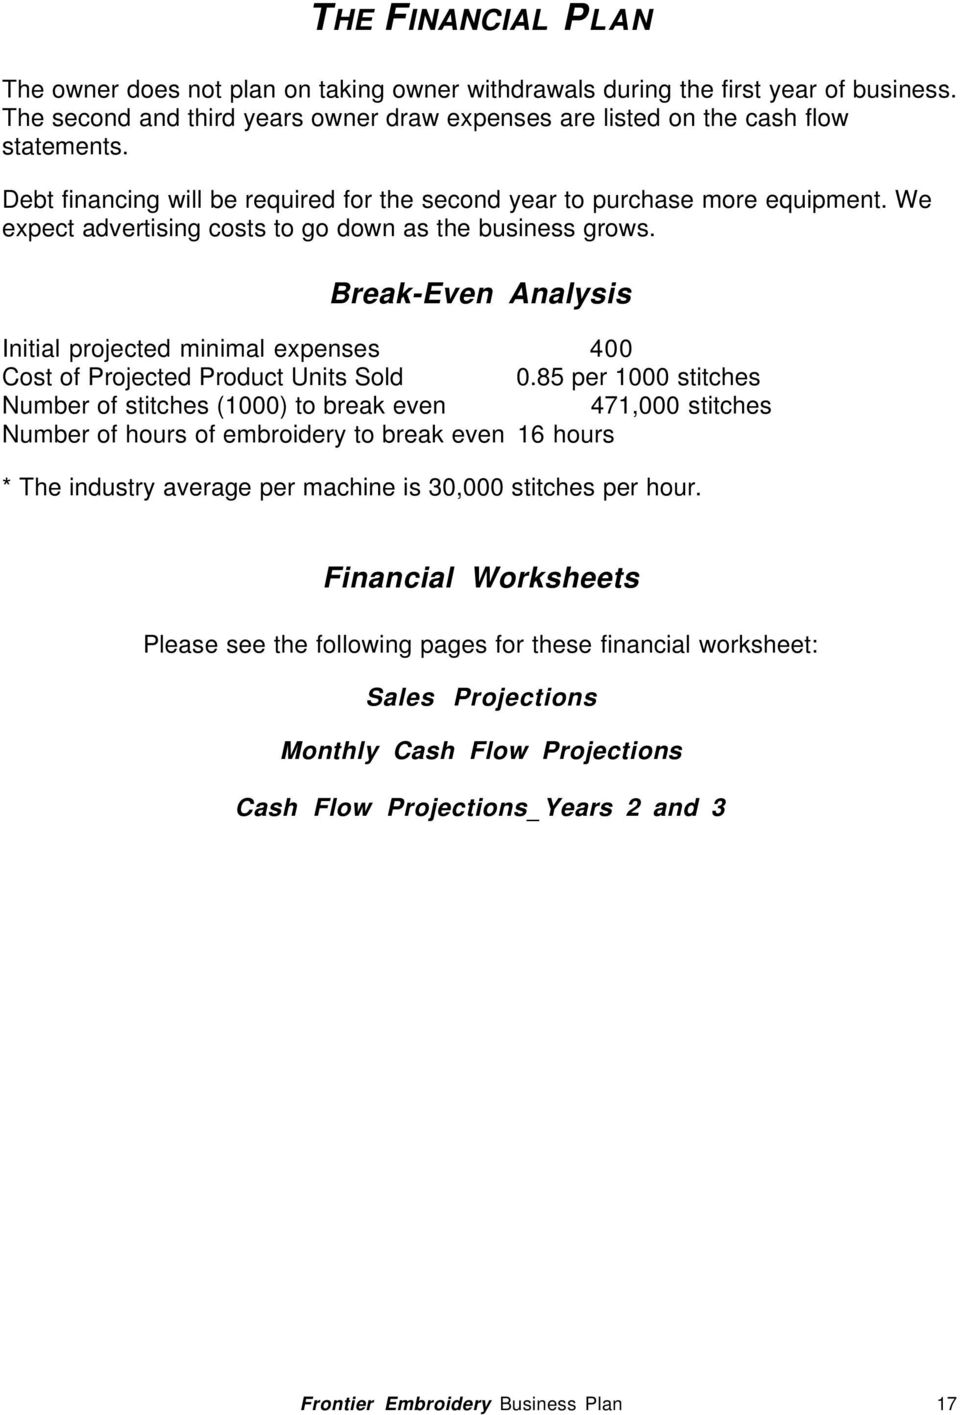 Break-Even Analysis Initial projected minimal expenses 400 Cost of Projected Product Units Sold 0.